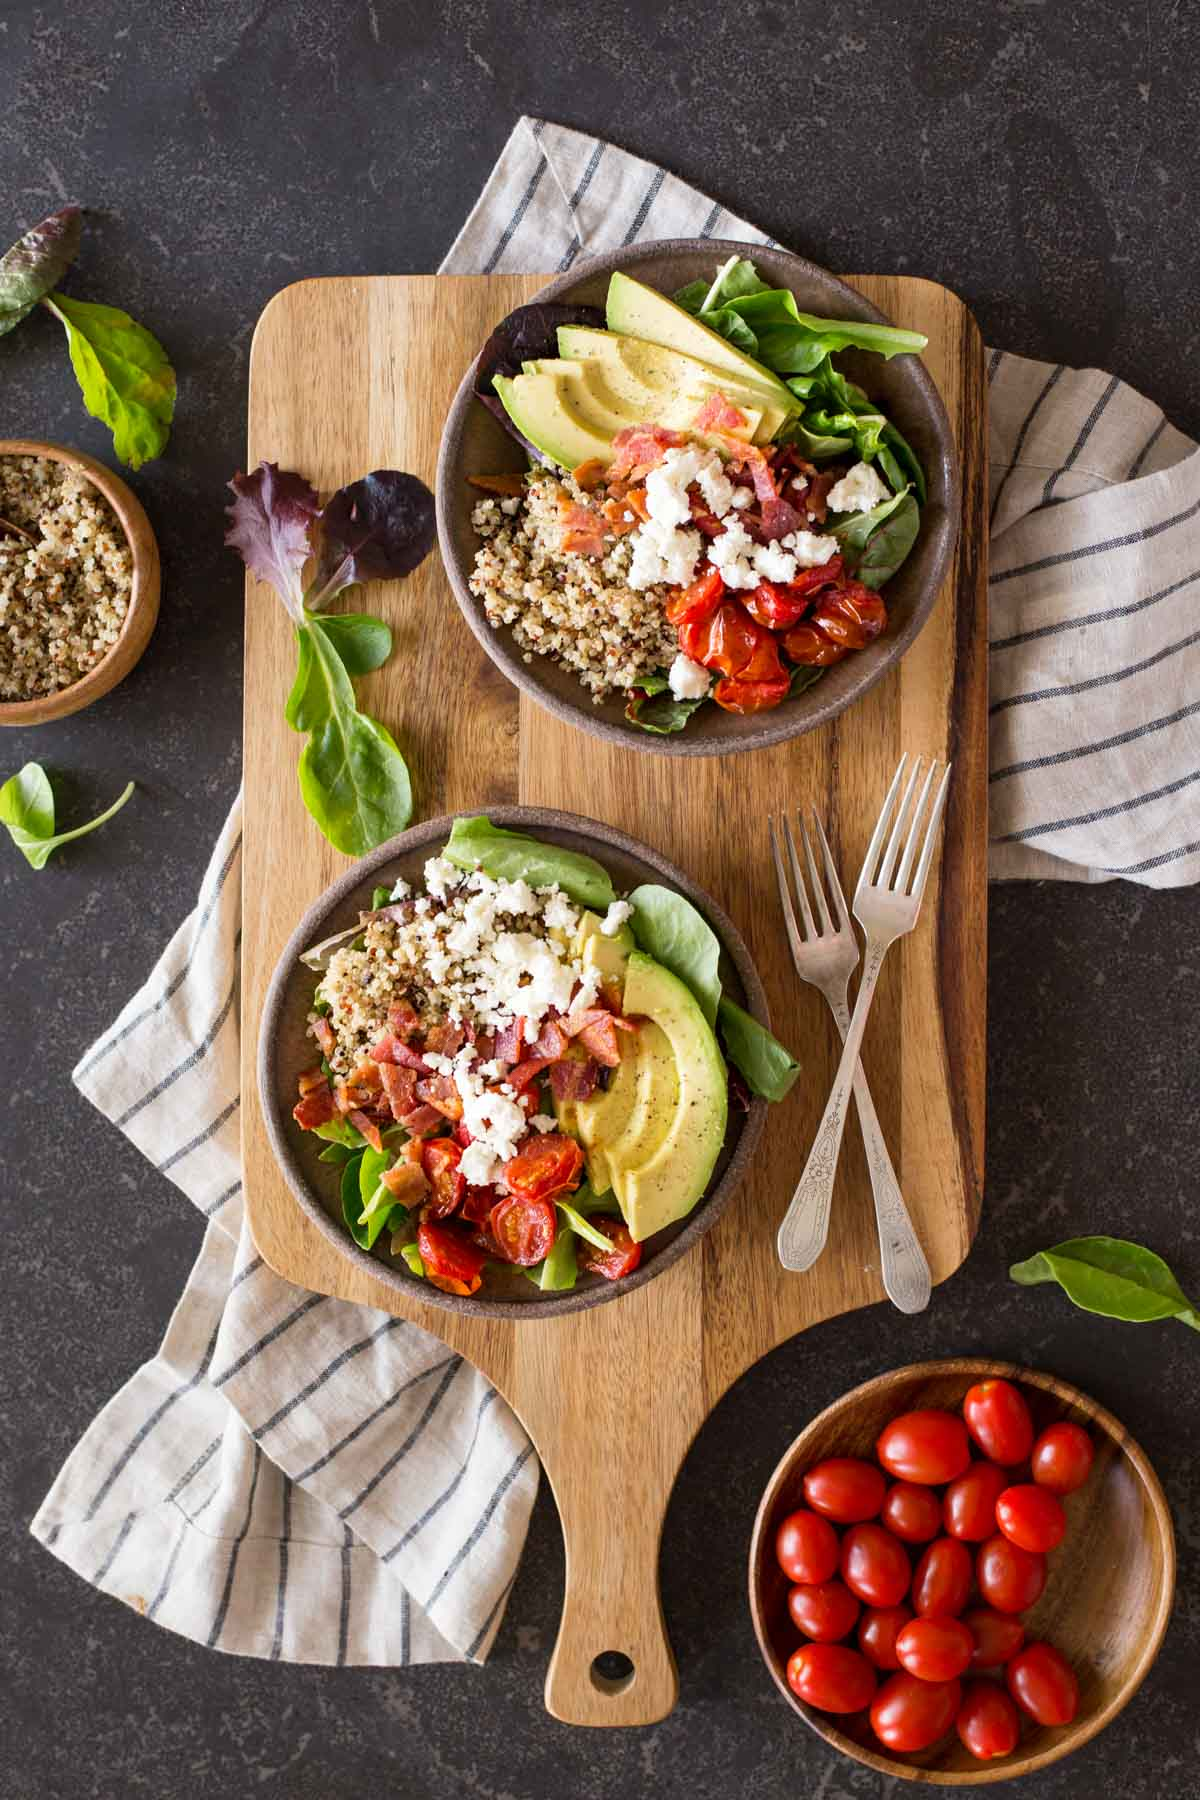 Two BLT Bliss Bowls on a cutting board with two forks, with a bowl of grape tomatoes and a bowl of quinoa next to the board.